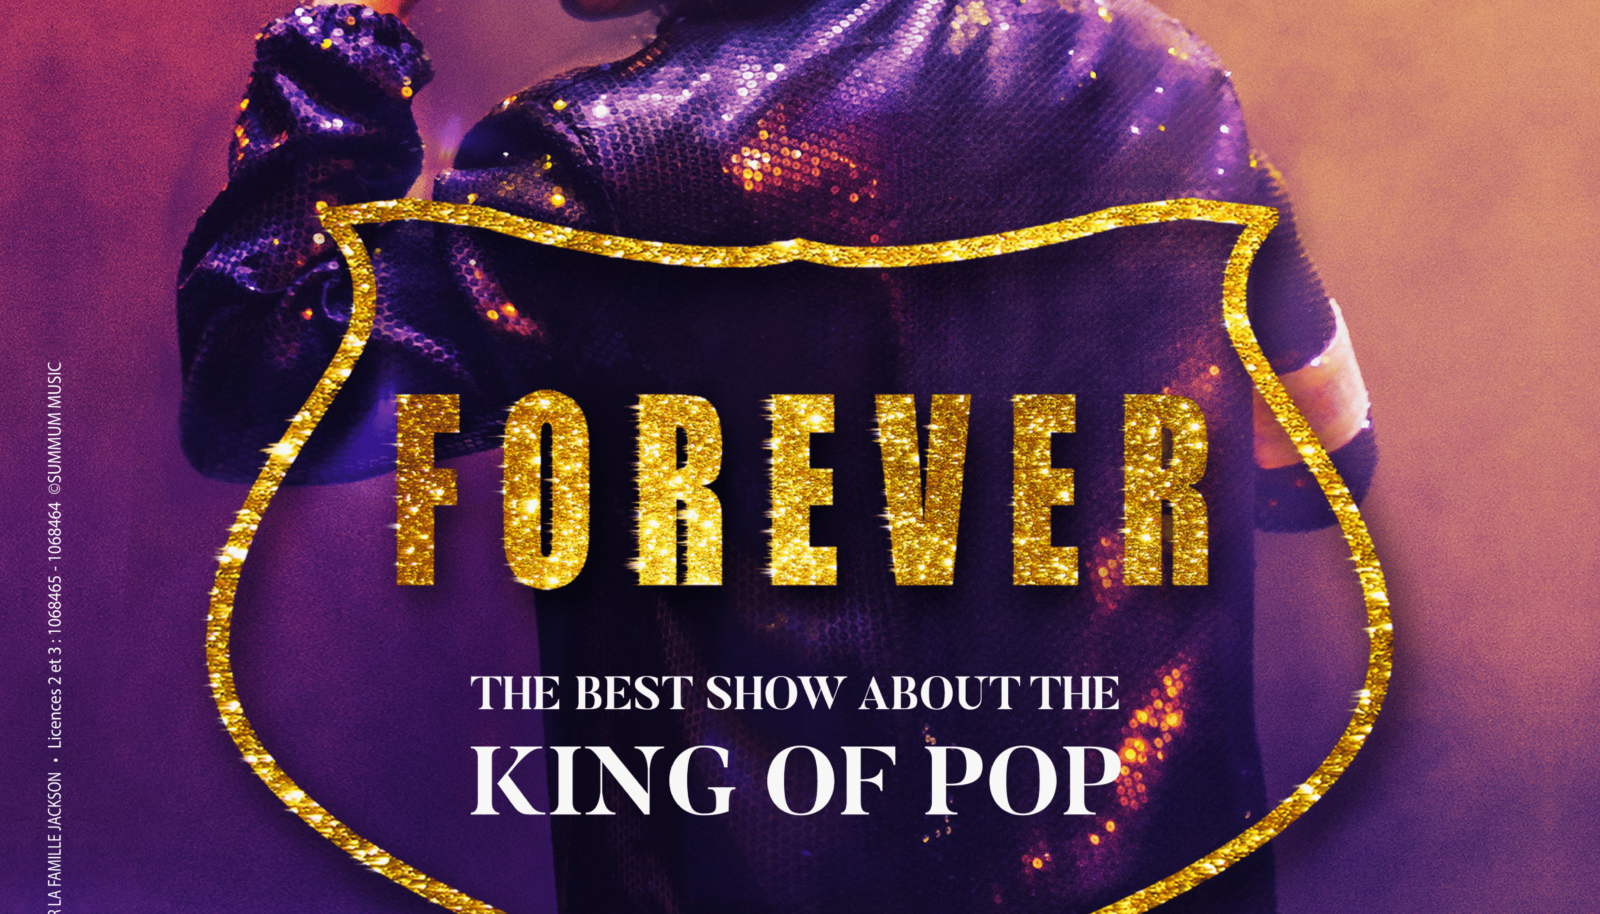 FOREVER THE BEST SHOW ABOUT THE KING OF POP 07/12/2019